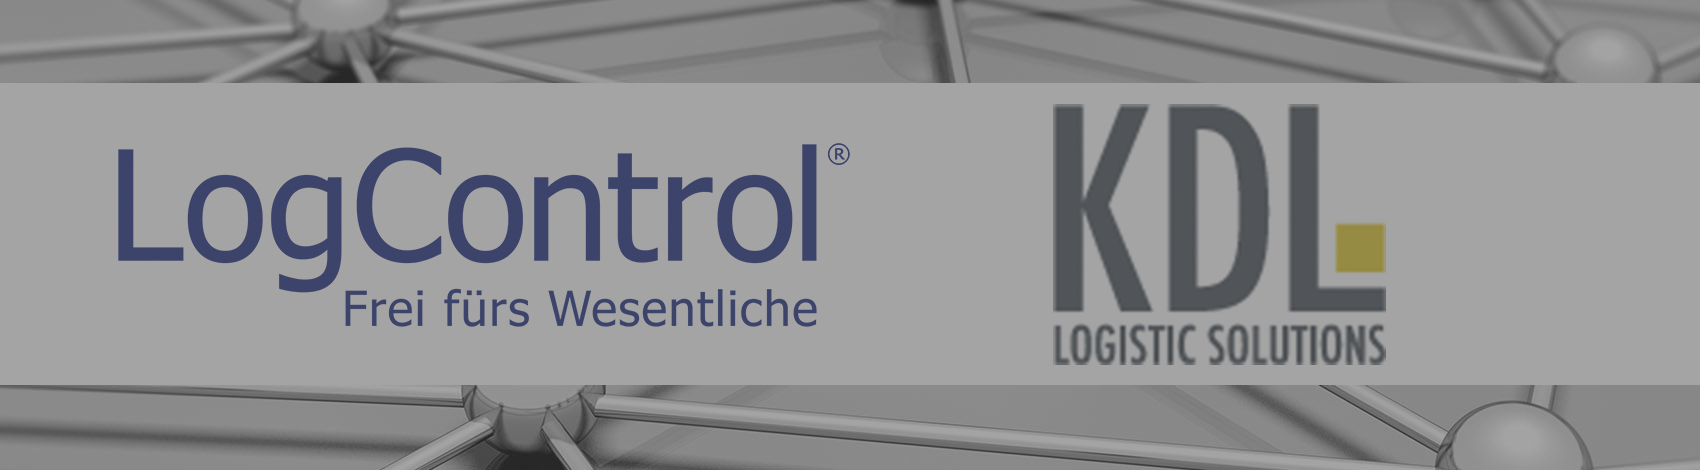 KDL und LogControl Teil der MHP Solution Group